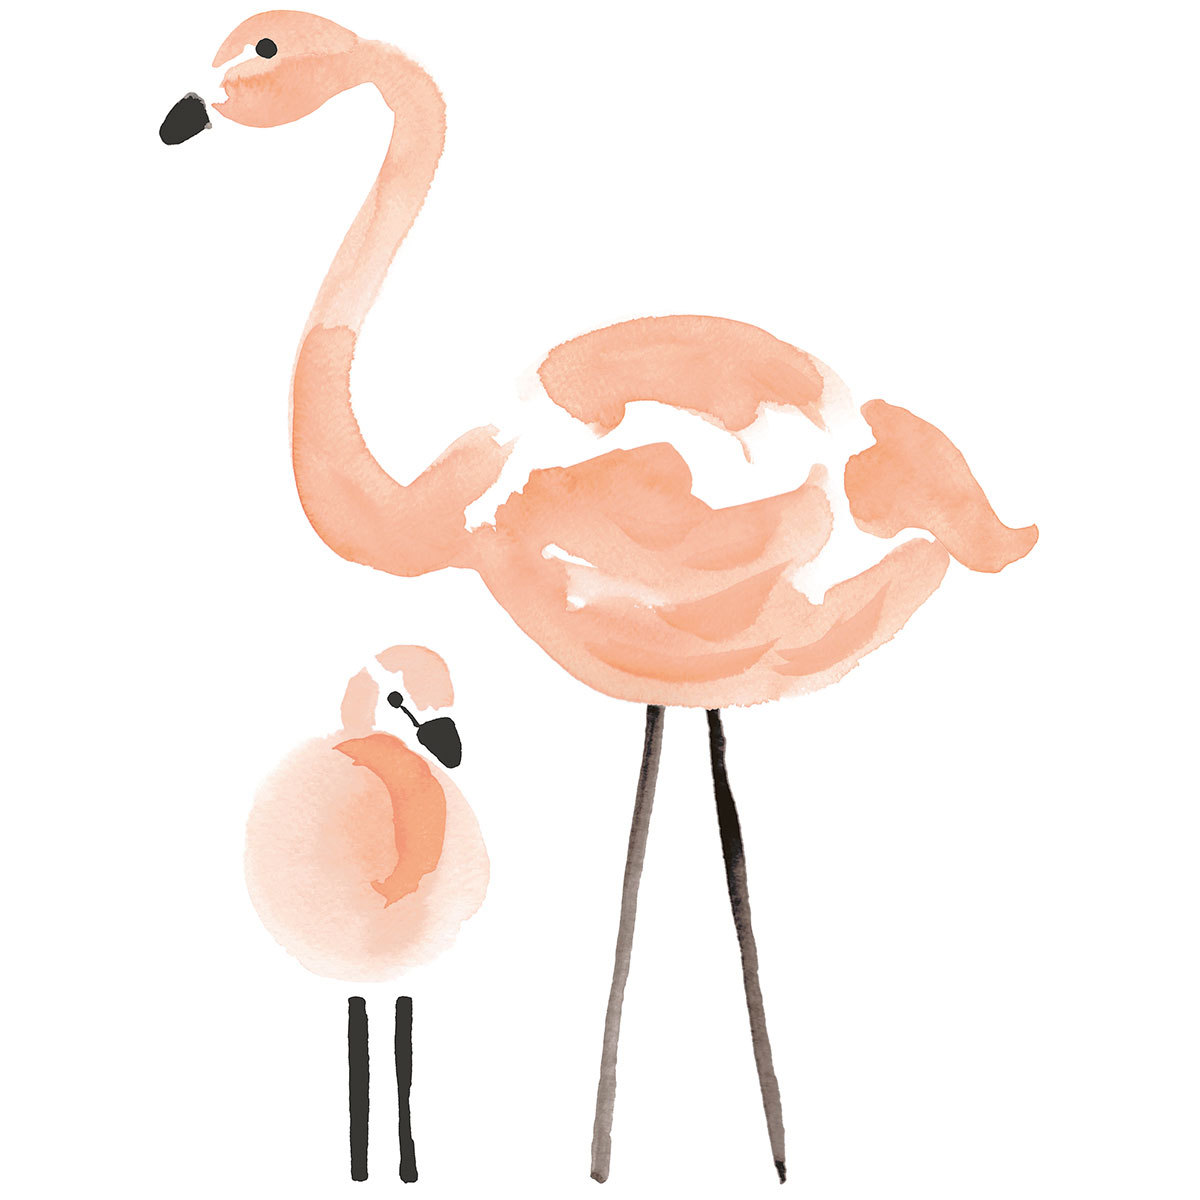 Sticker Flamingo - Stickers XL - Flamants Roses Flamingo - Stickers XL - Flamants Roses